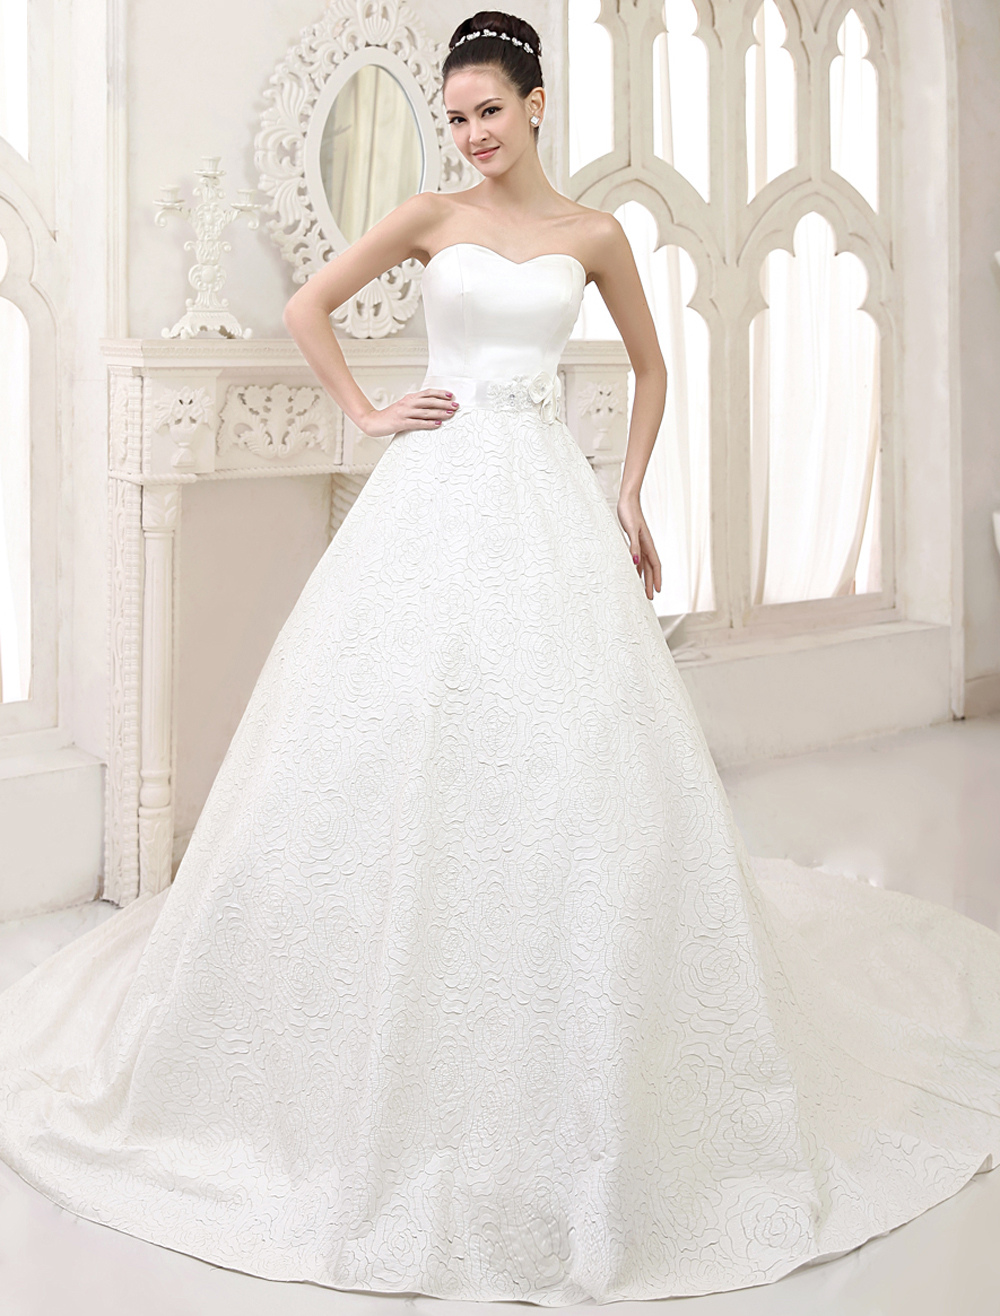 Ivory A-line Flower Chapel Train Wedding Dress For Bride with Sweetheart Neck Milanoo